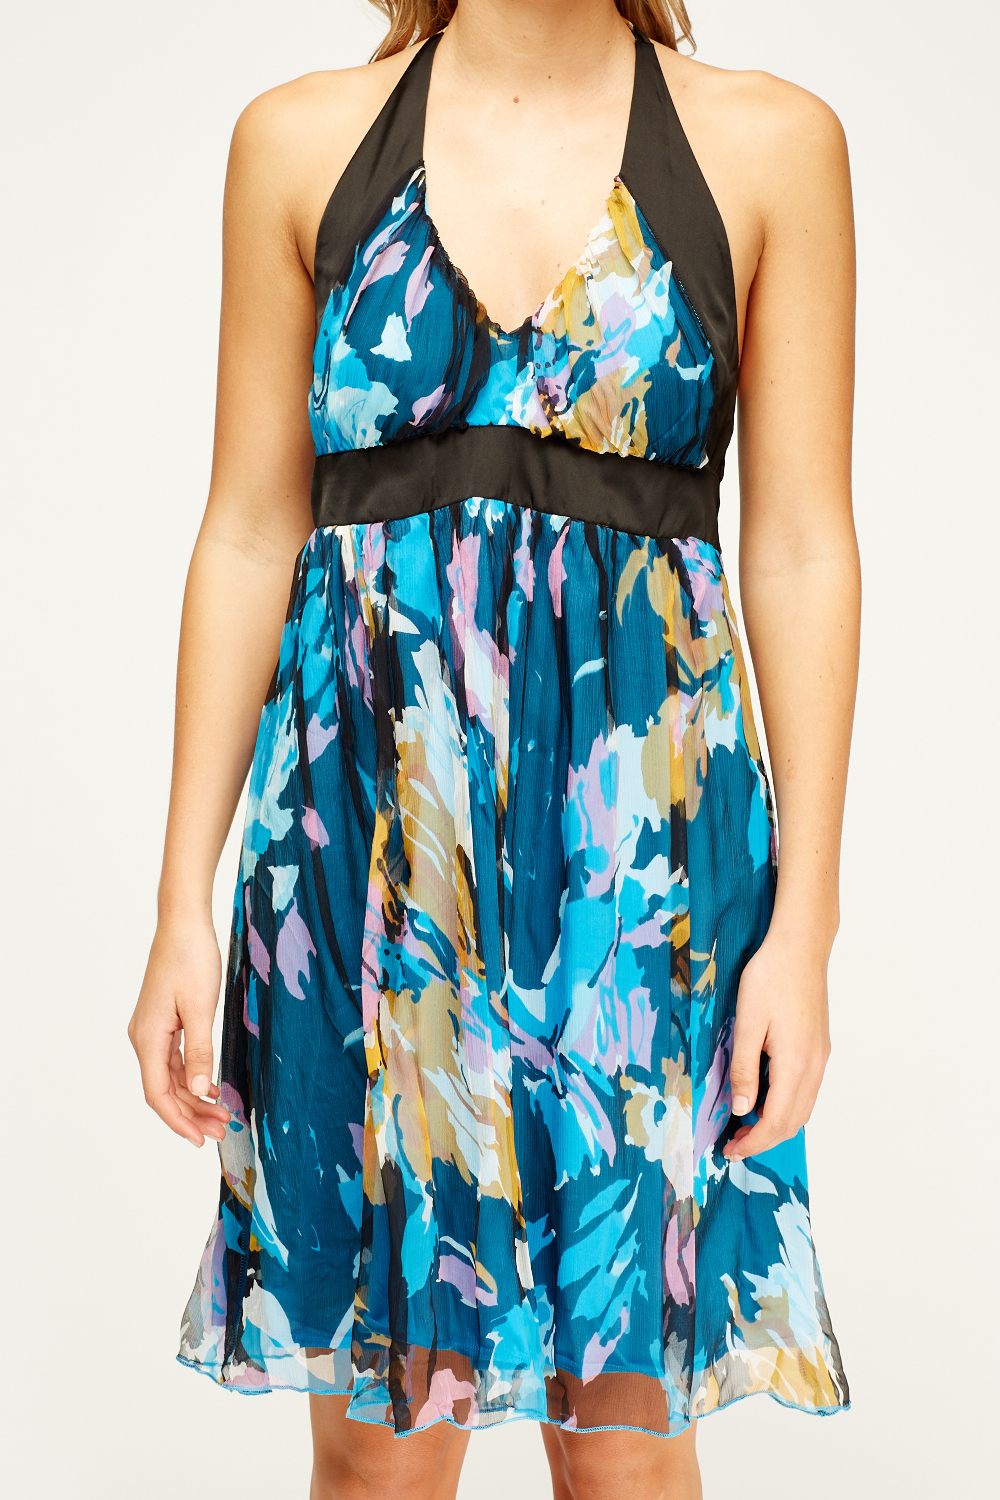 Sexy Royal Blue Mint Printed Halter Maxi Party Dress This dress is perfect for a night out! Features: bold print, halter, plunging neckline, front slit accent, followed by a semi-fitted wear. 90% Poly.